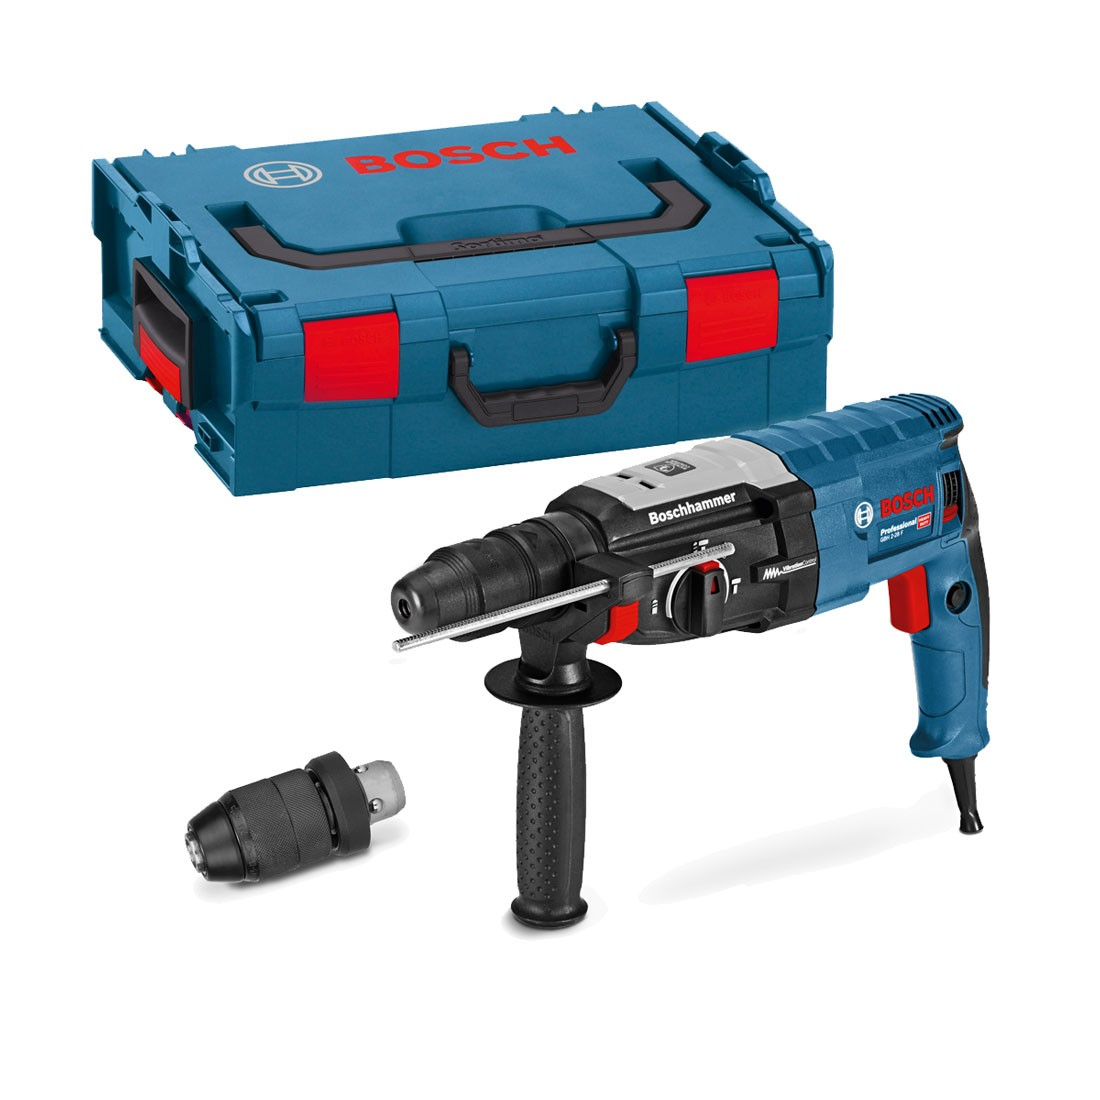 bosch gbh 2 28 f sds plus rotary hammer drill with qcc in carry case powertool world. Black Bedroom Furniture Sets. Home Design Ideas